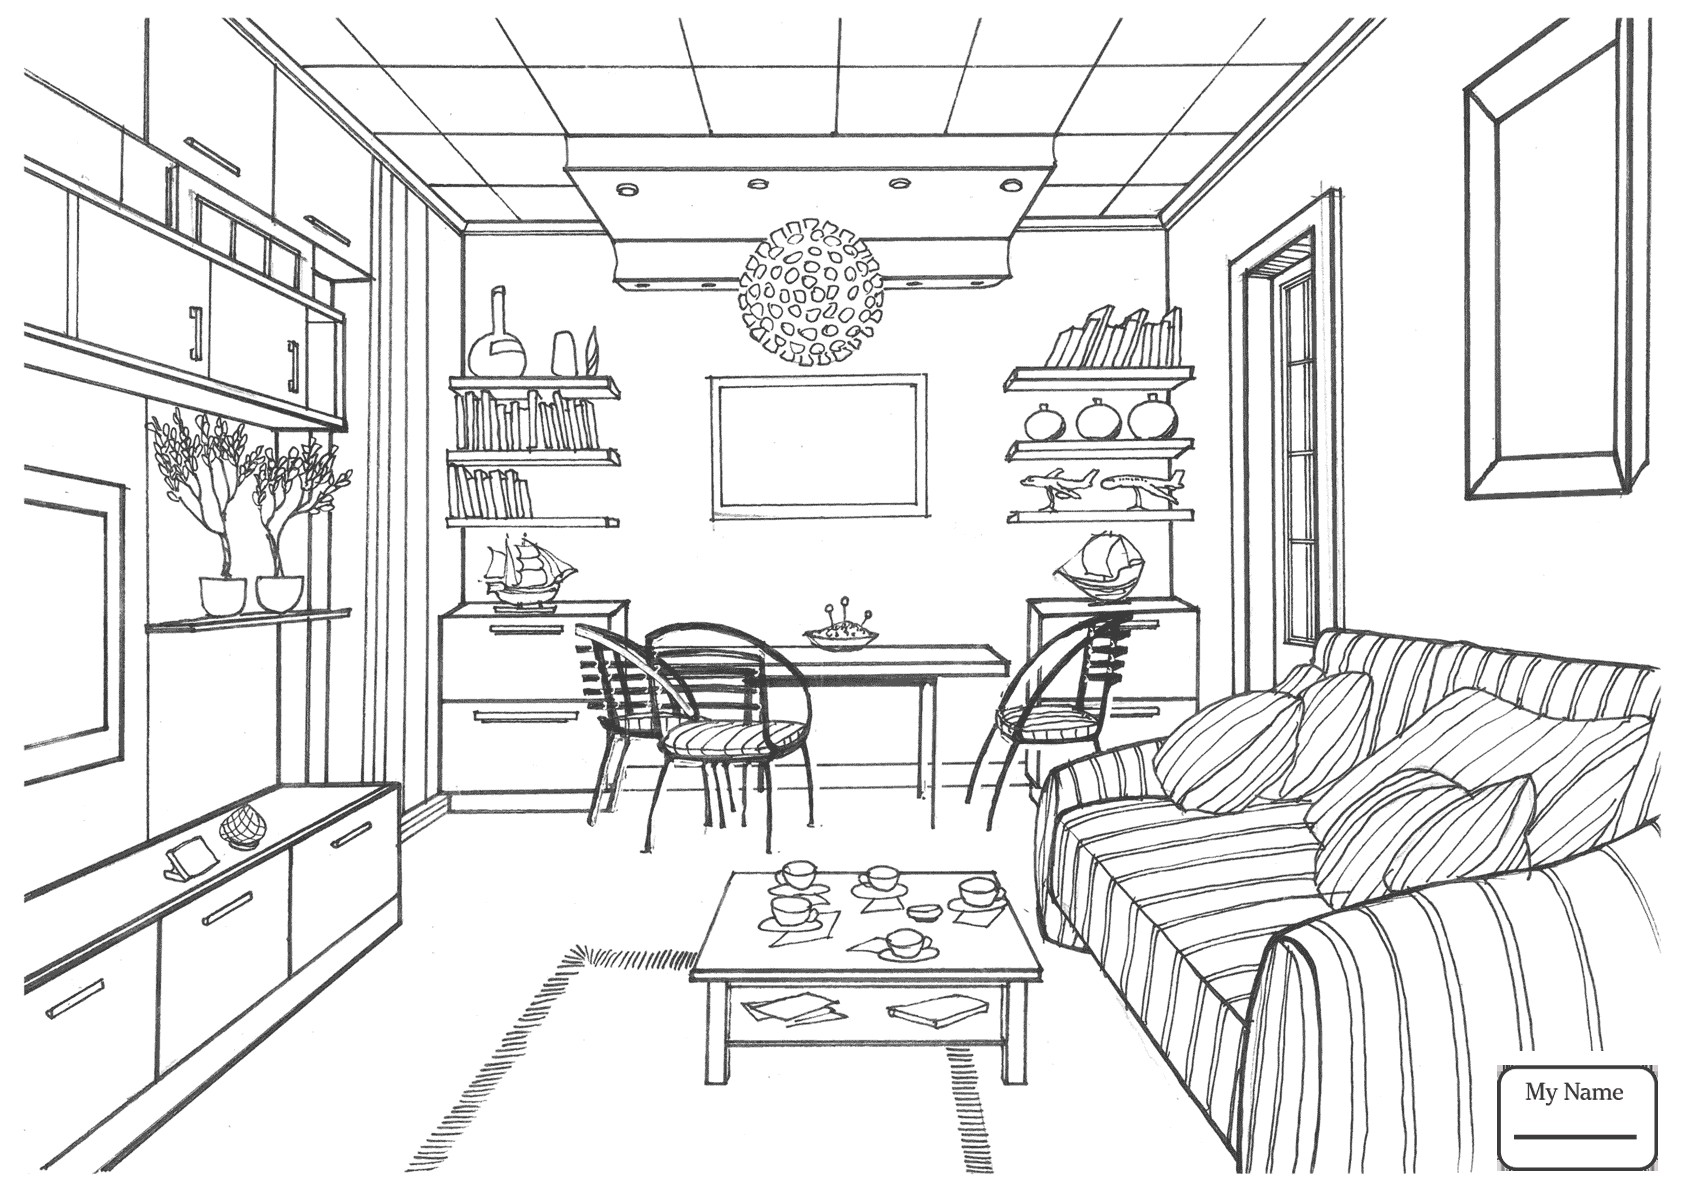 Kitchen Design Drawing At Getdrawings